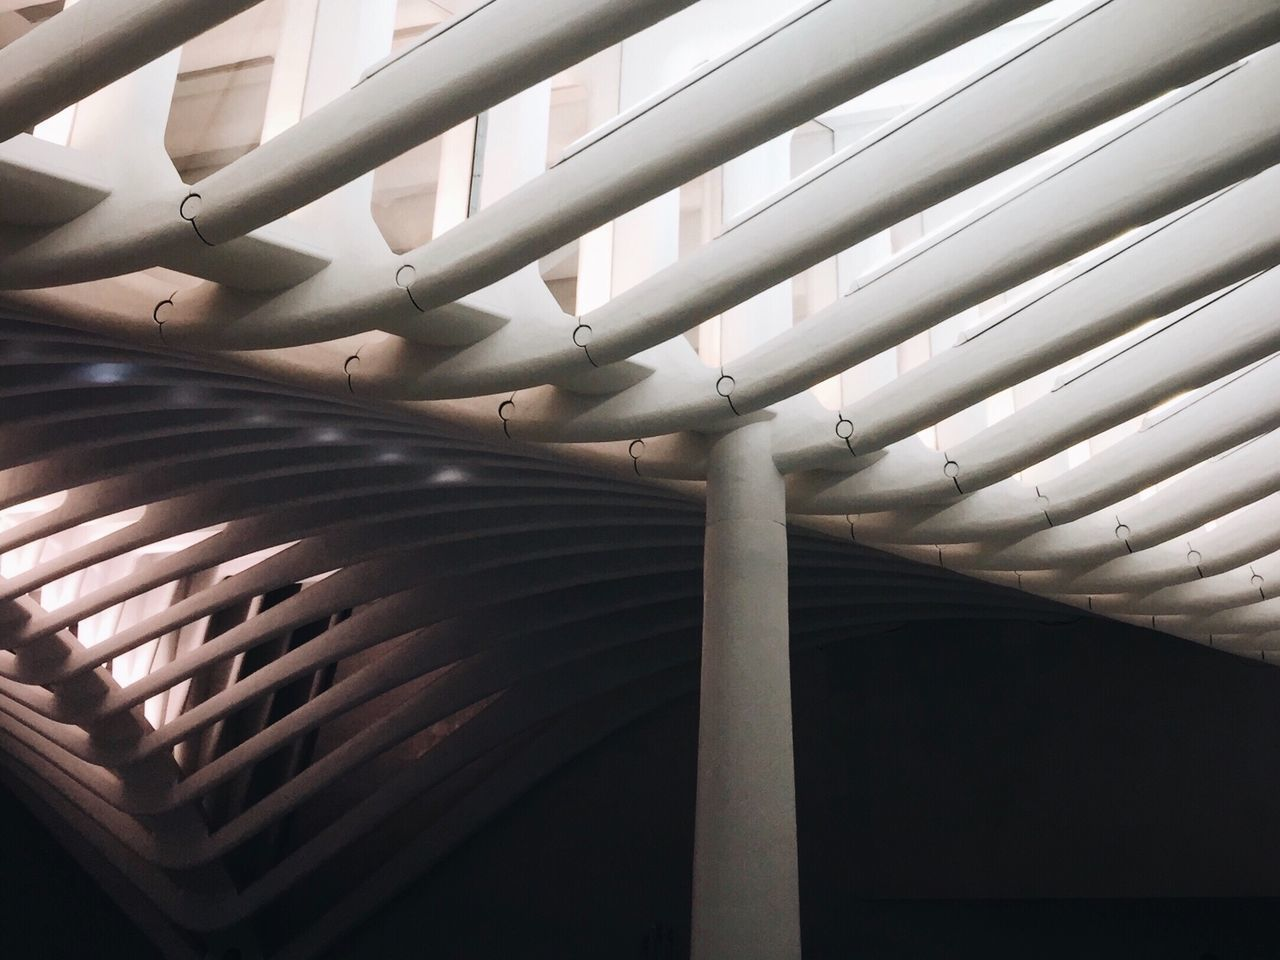 indoors, no people, pattern, ceiling, architecture, white color, built structure, metal, day, close-up, architectural column, low angle view, technology, repetition, roof, building, lighting equipment, pipe - tube, wood - material, roof beam